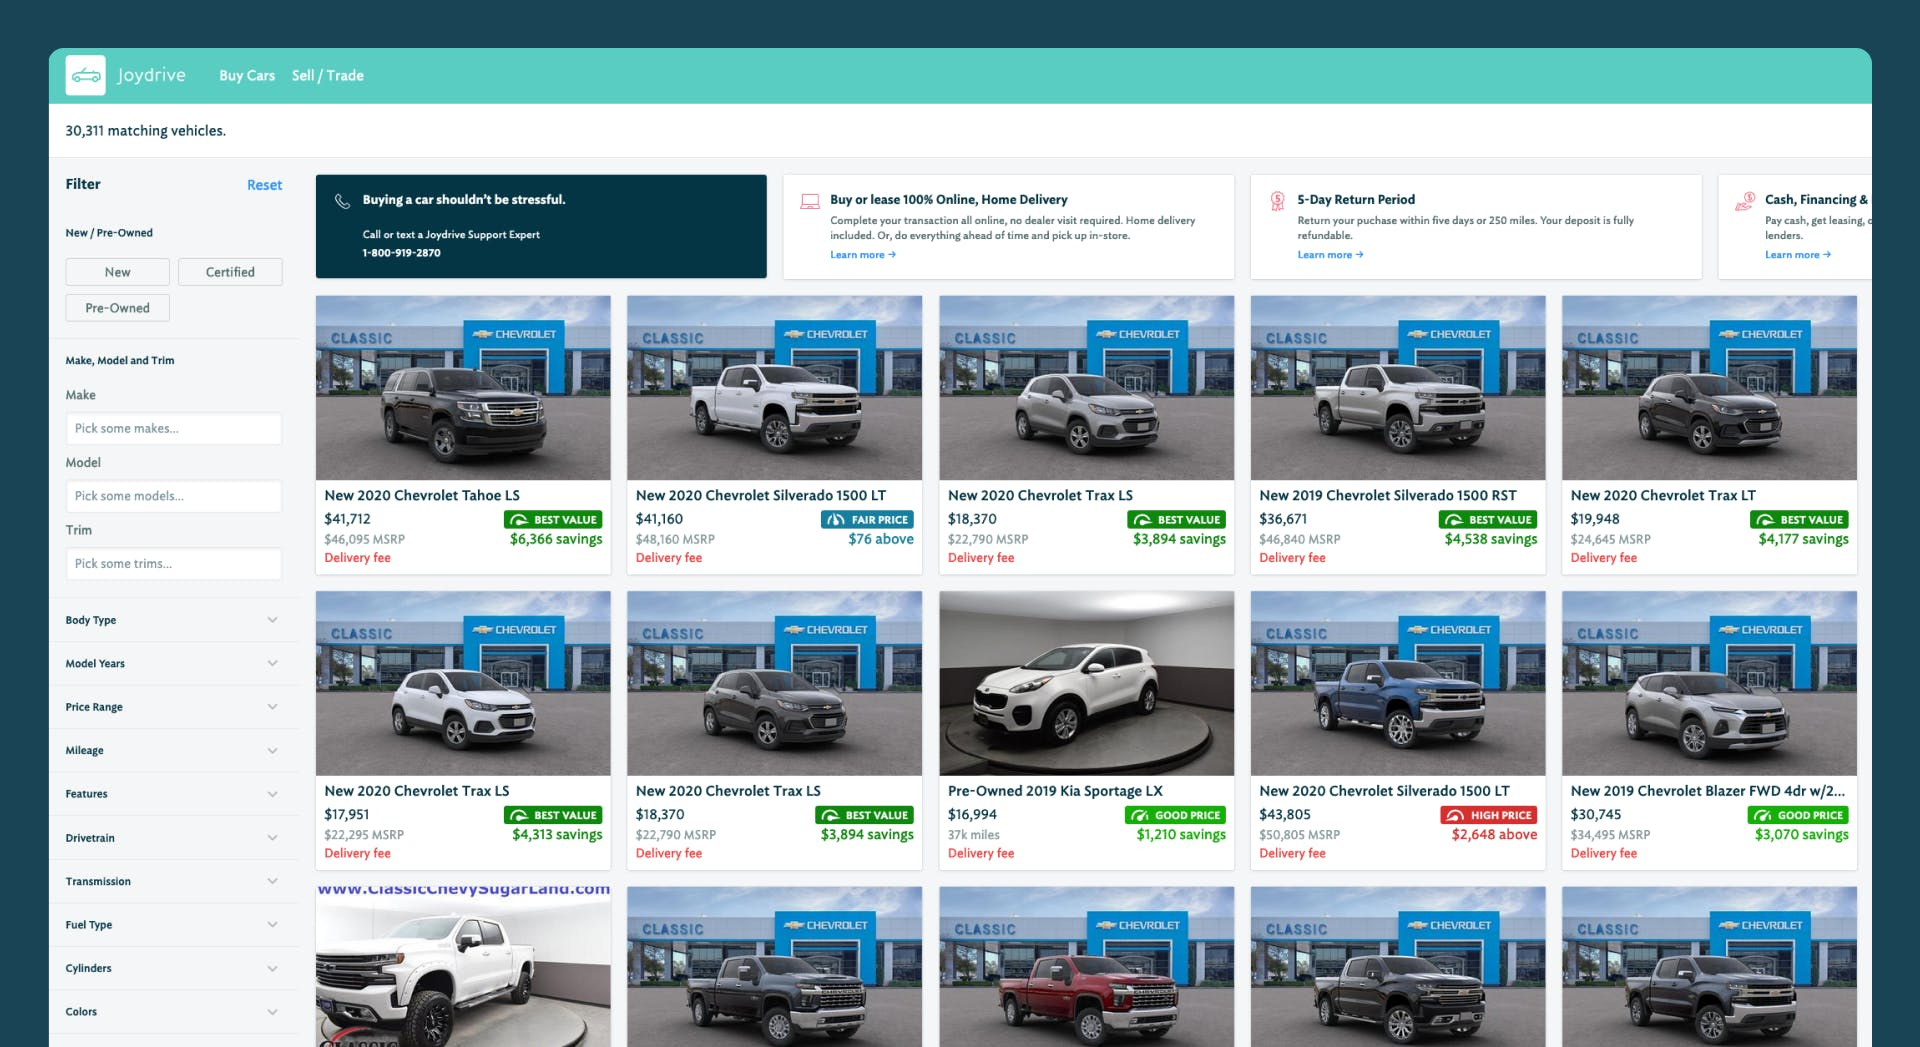 A screenshot of the Joydrive searching for cars interface showing a sidebar with filters and a grid view of cars